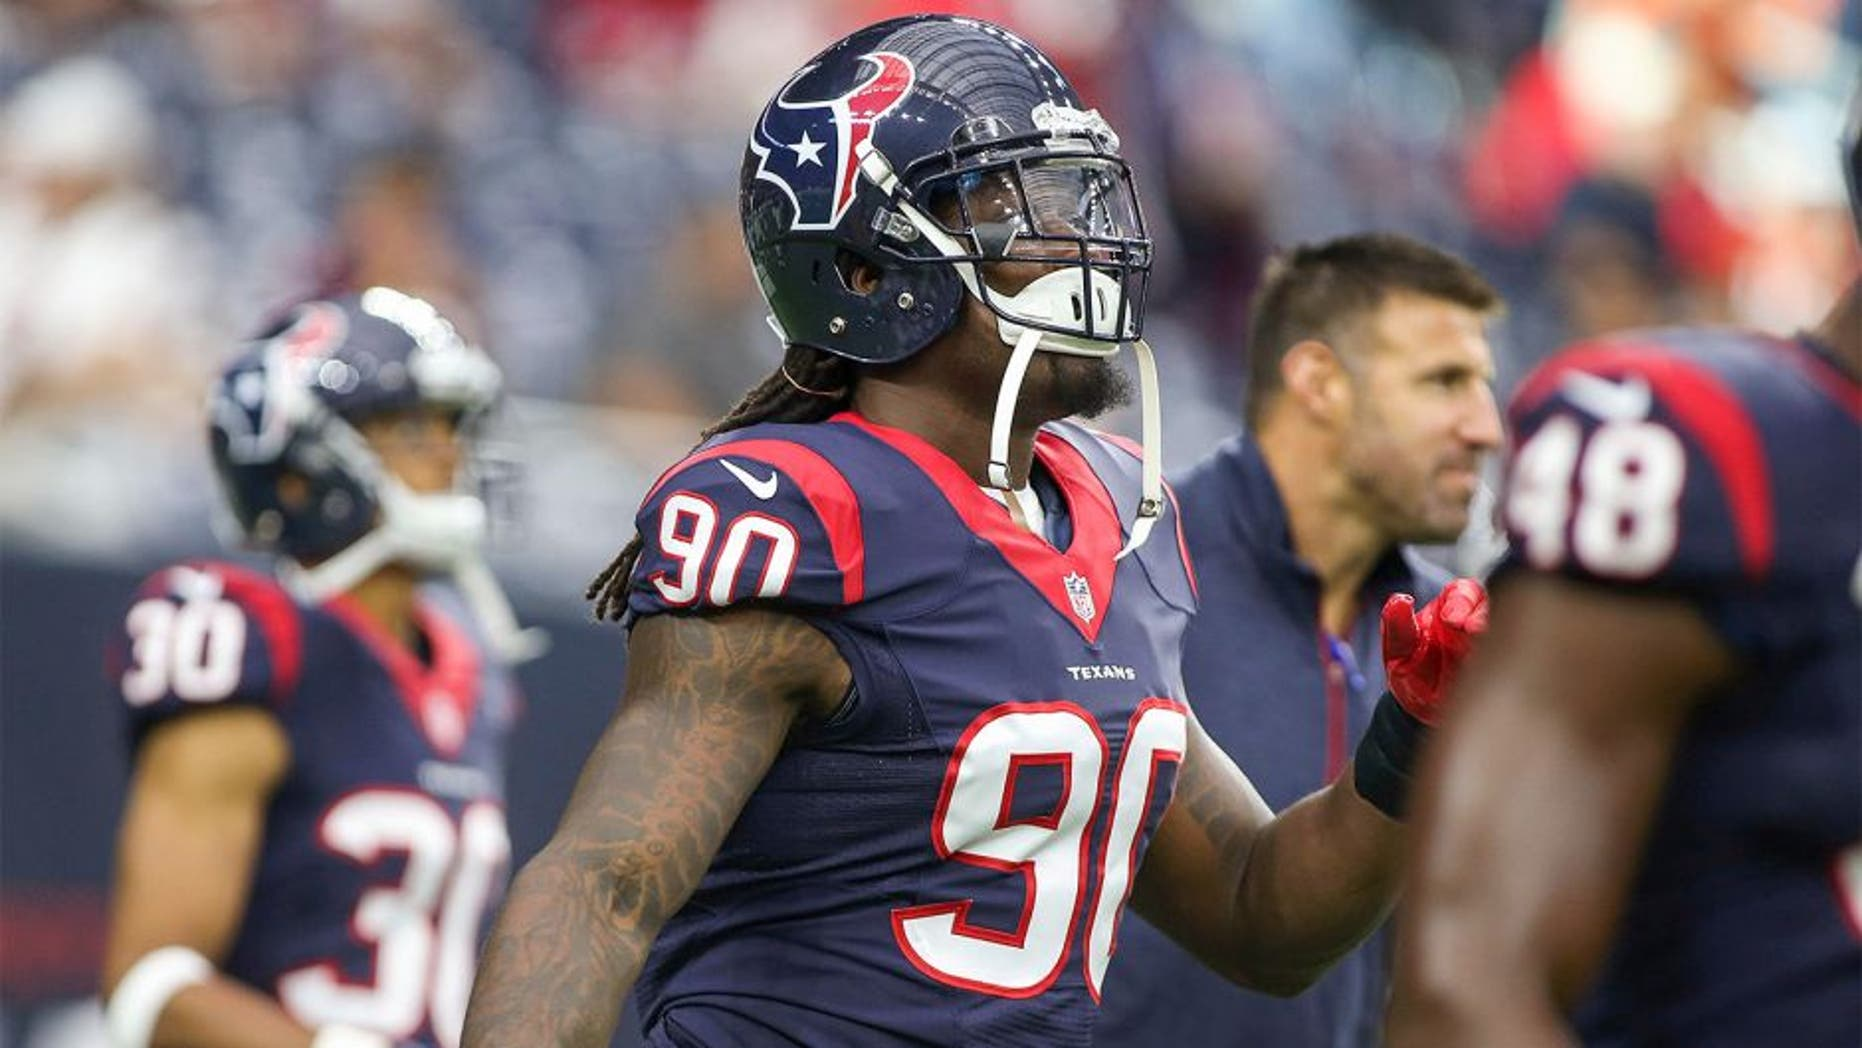 Aug 22, 2015; Houston, TX, USA; Houston Texans outside linebacker Jadeveon Clowney (90) warms up before a game against the Denver Broncos at NRG Stadium. Mandatory Credit: Troy Taormina-USA TODAY Sports